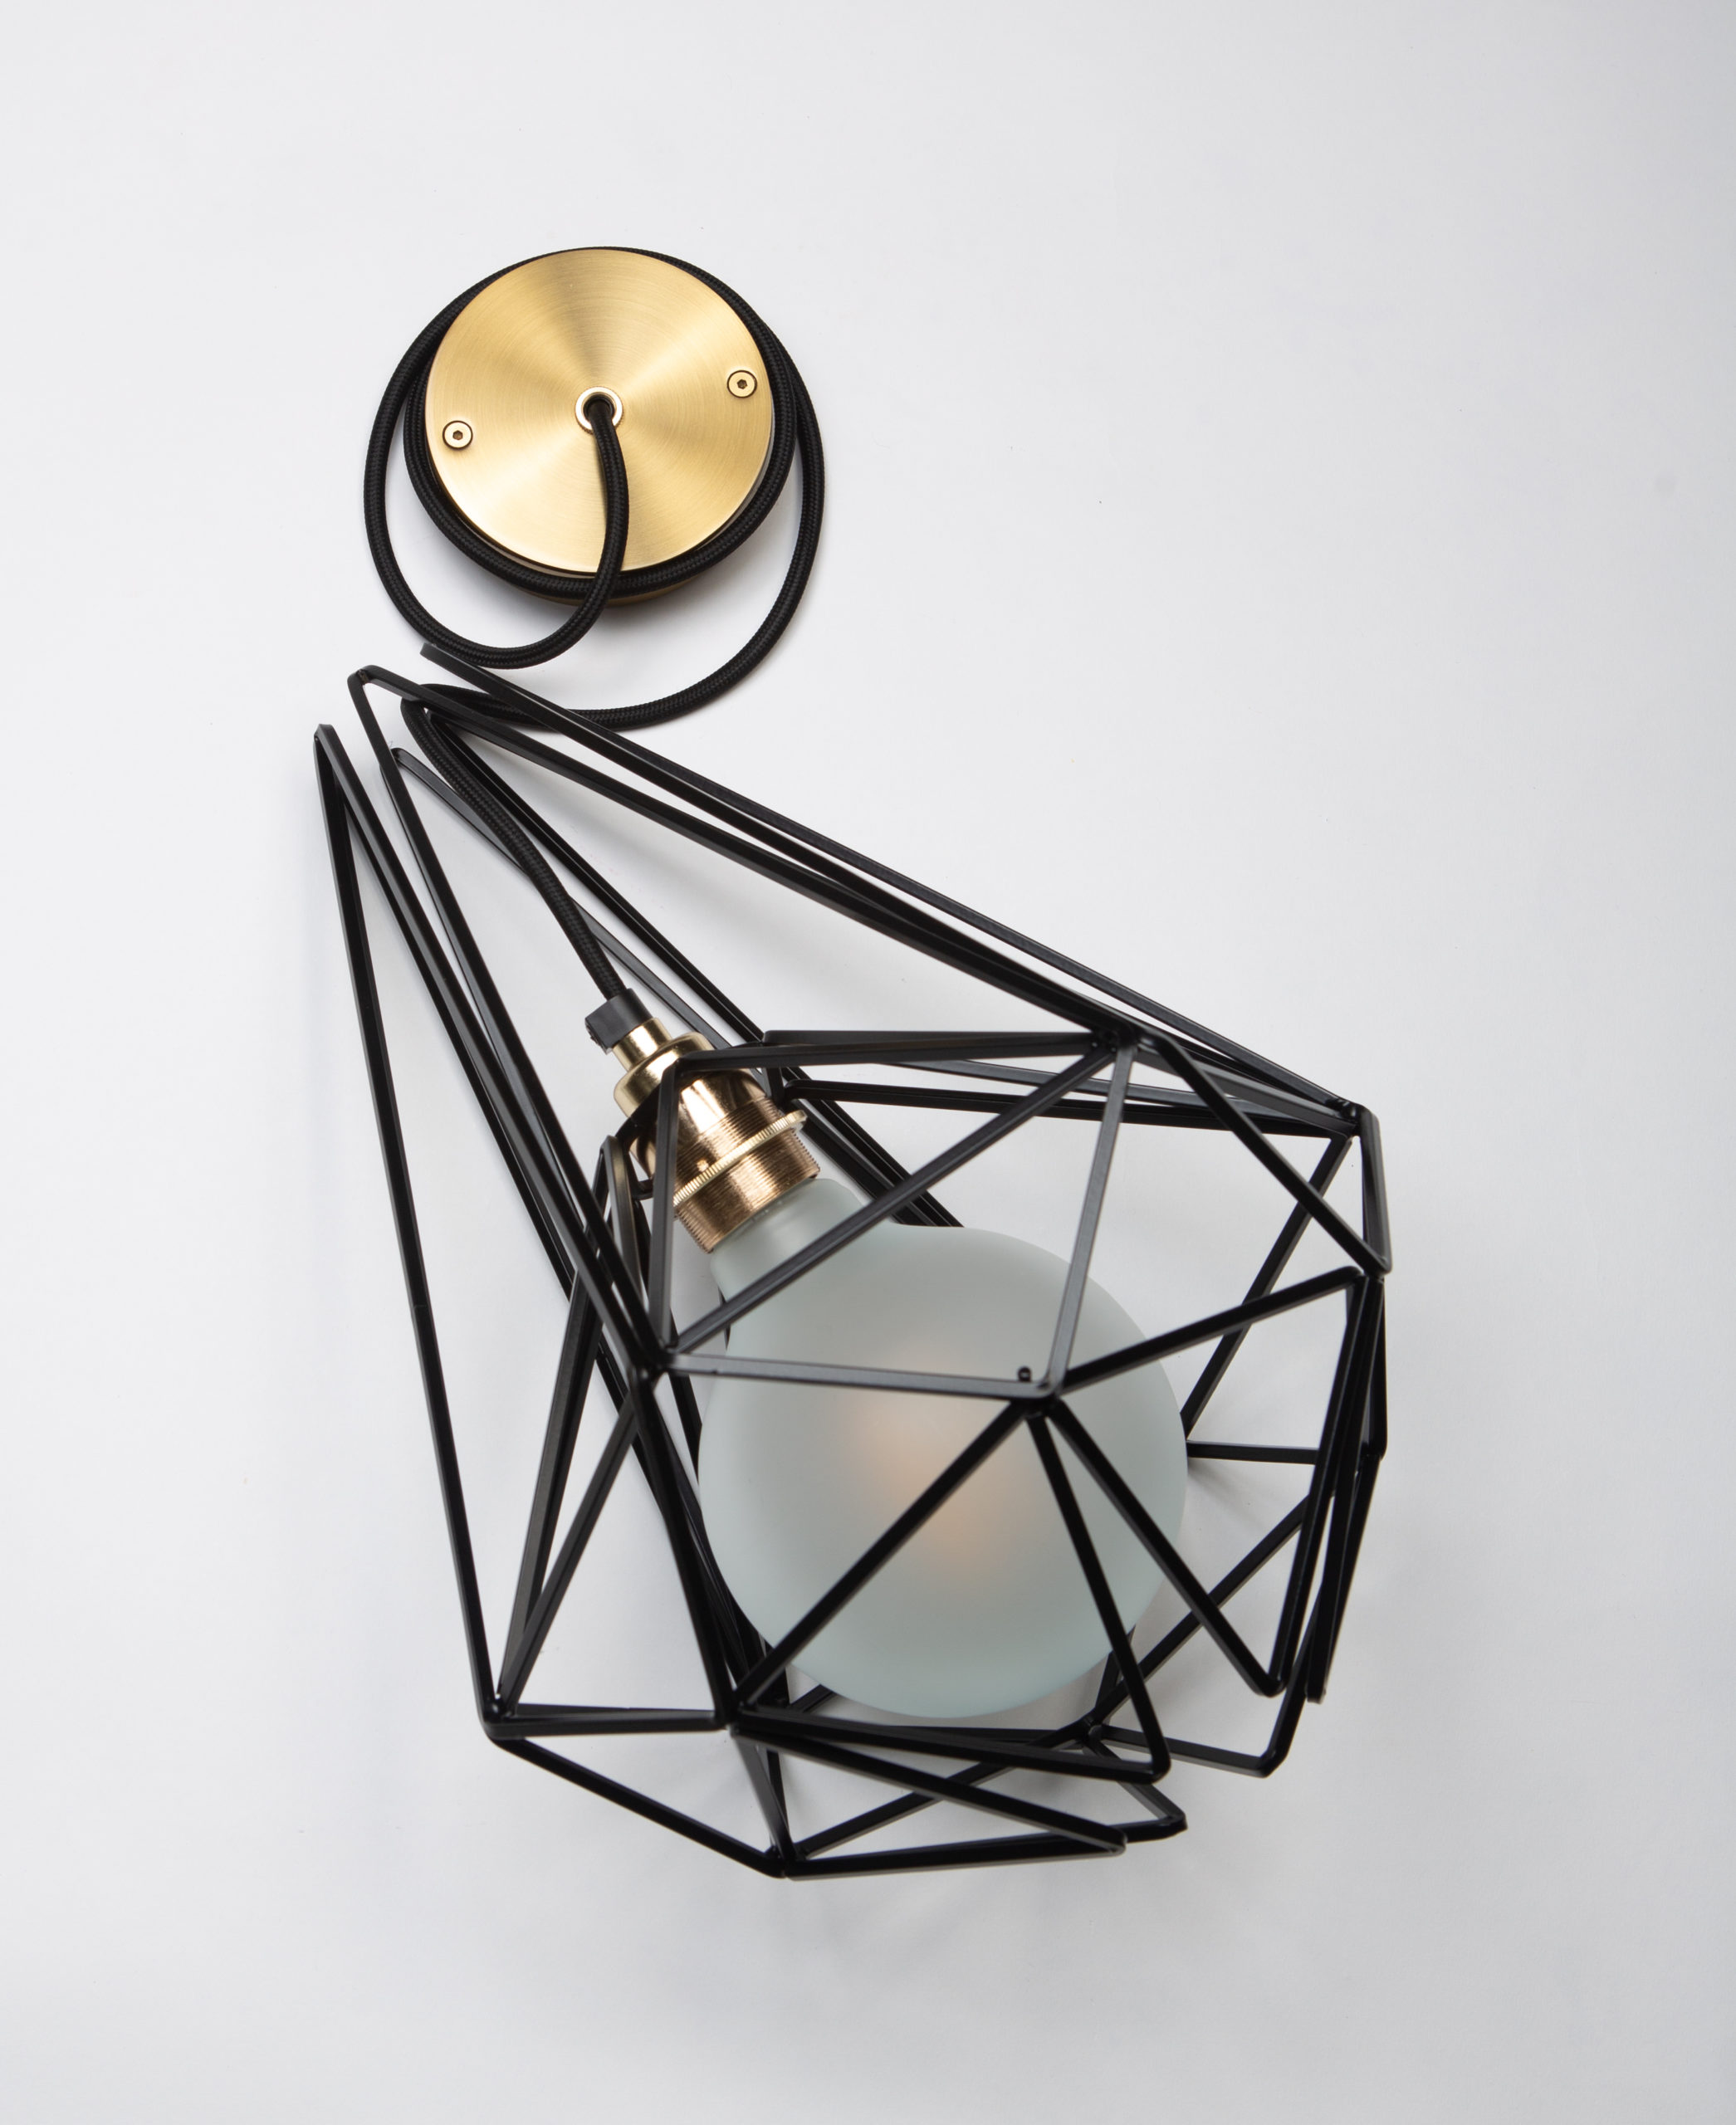 large black cage pendant light with frosted light bulb, black fabric cable, gold bulb holder and gold ceiling rose against white background